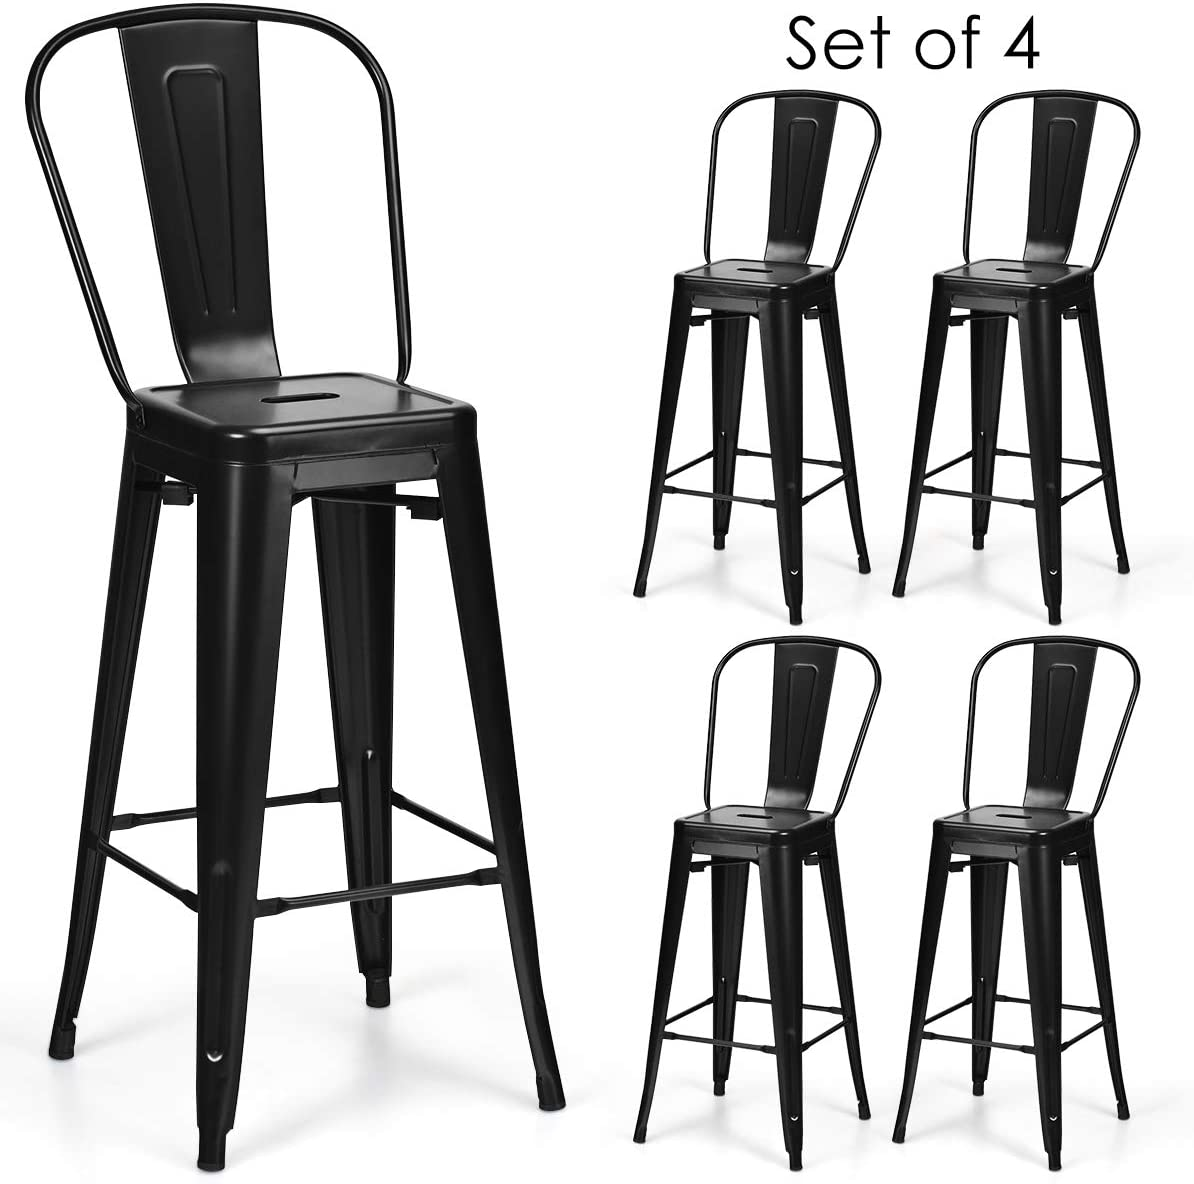 COSTWAY Metal Bar stools Set of 4, with Removable Back, Cafe Side Chairs with Rubber Feet, Stylish and Modern Chairs, for Kitchen, Dining Rooms, and Side Bar Black-Update, 30